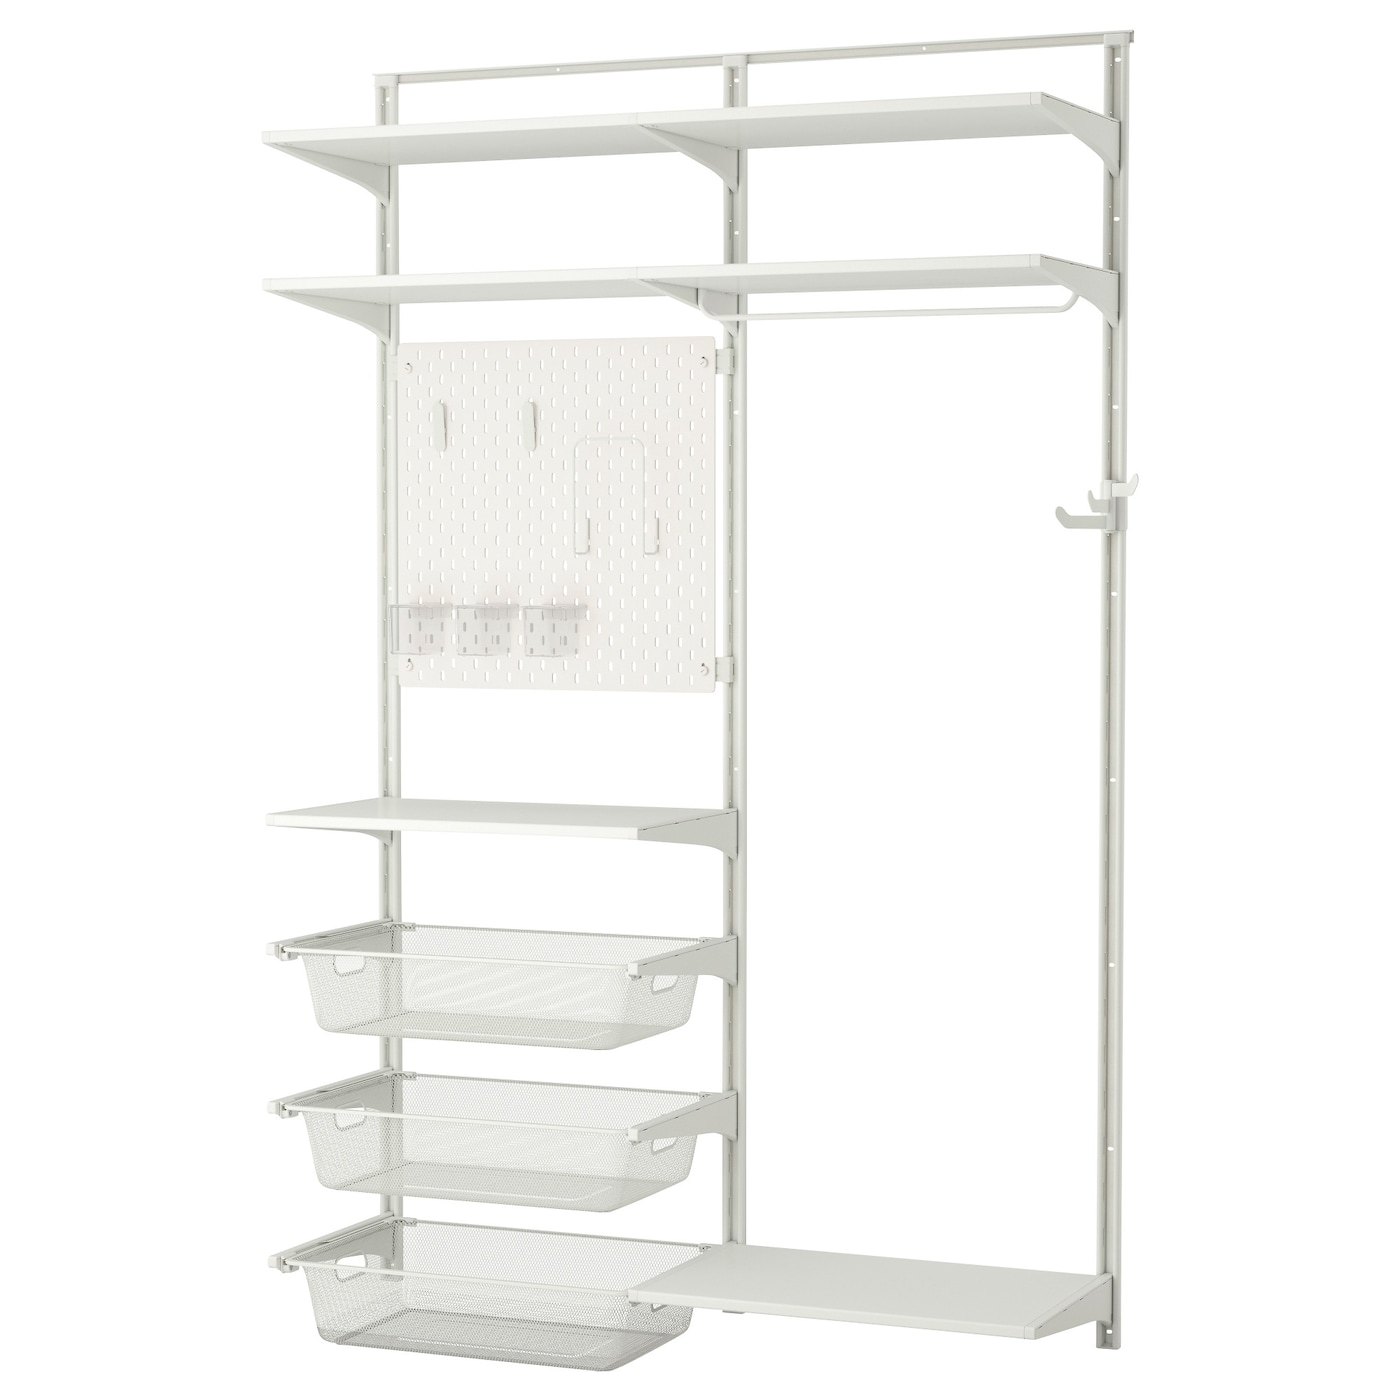 IKEA ALGOT/SKÅDIS wall upright/shelves/rod